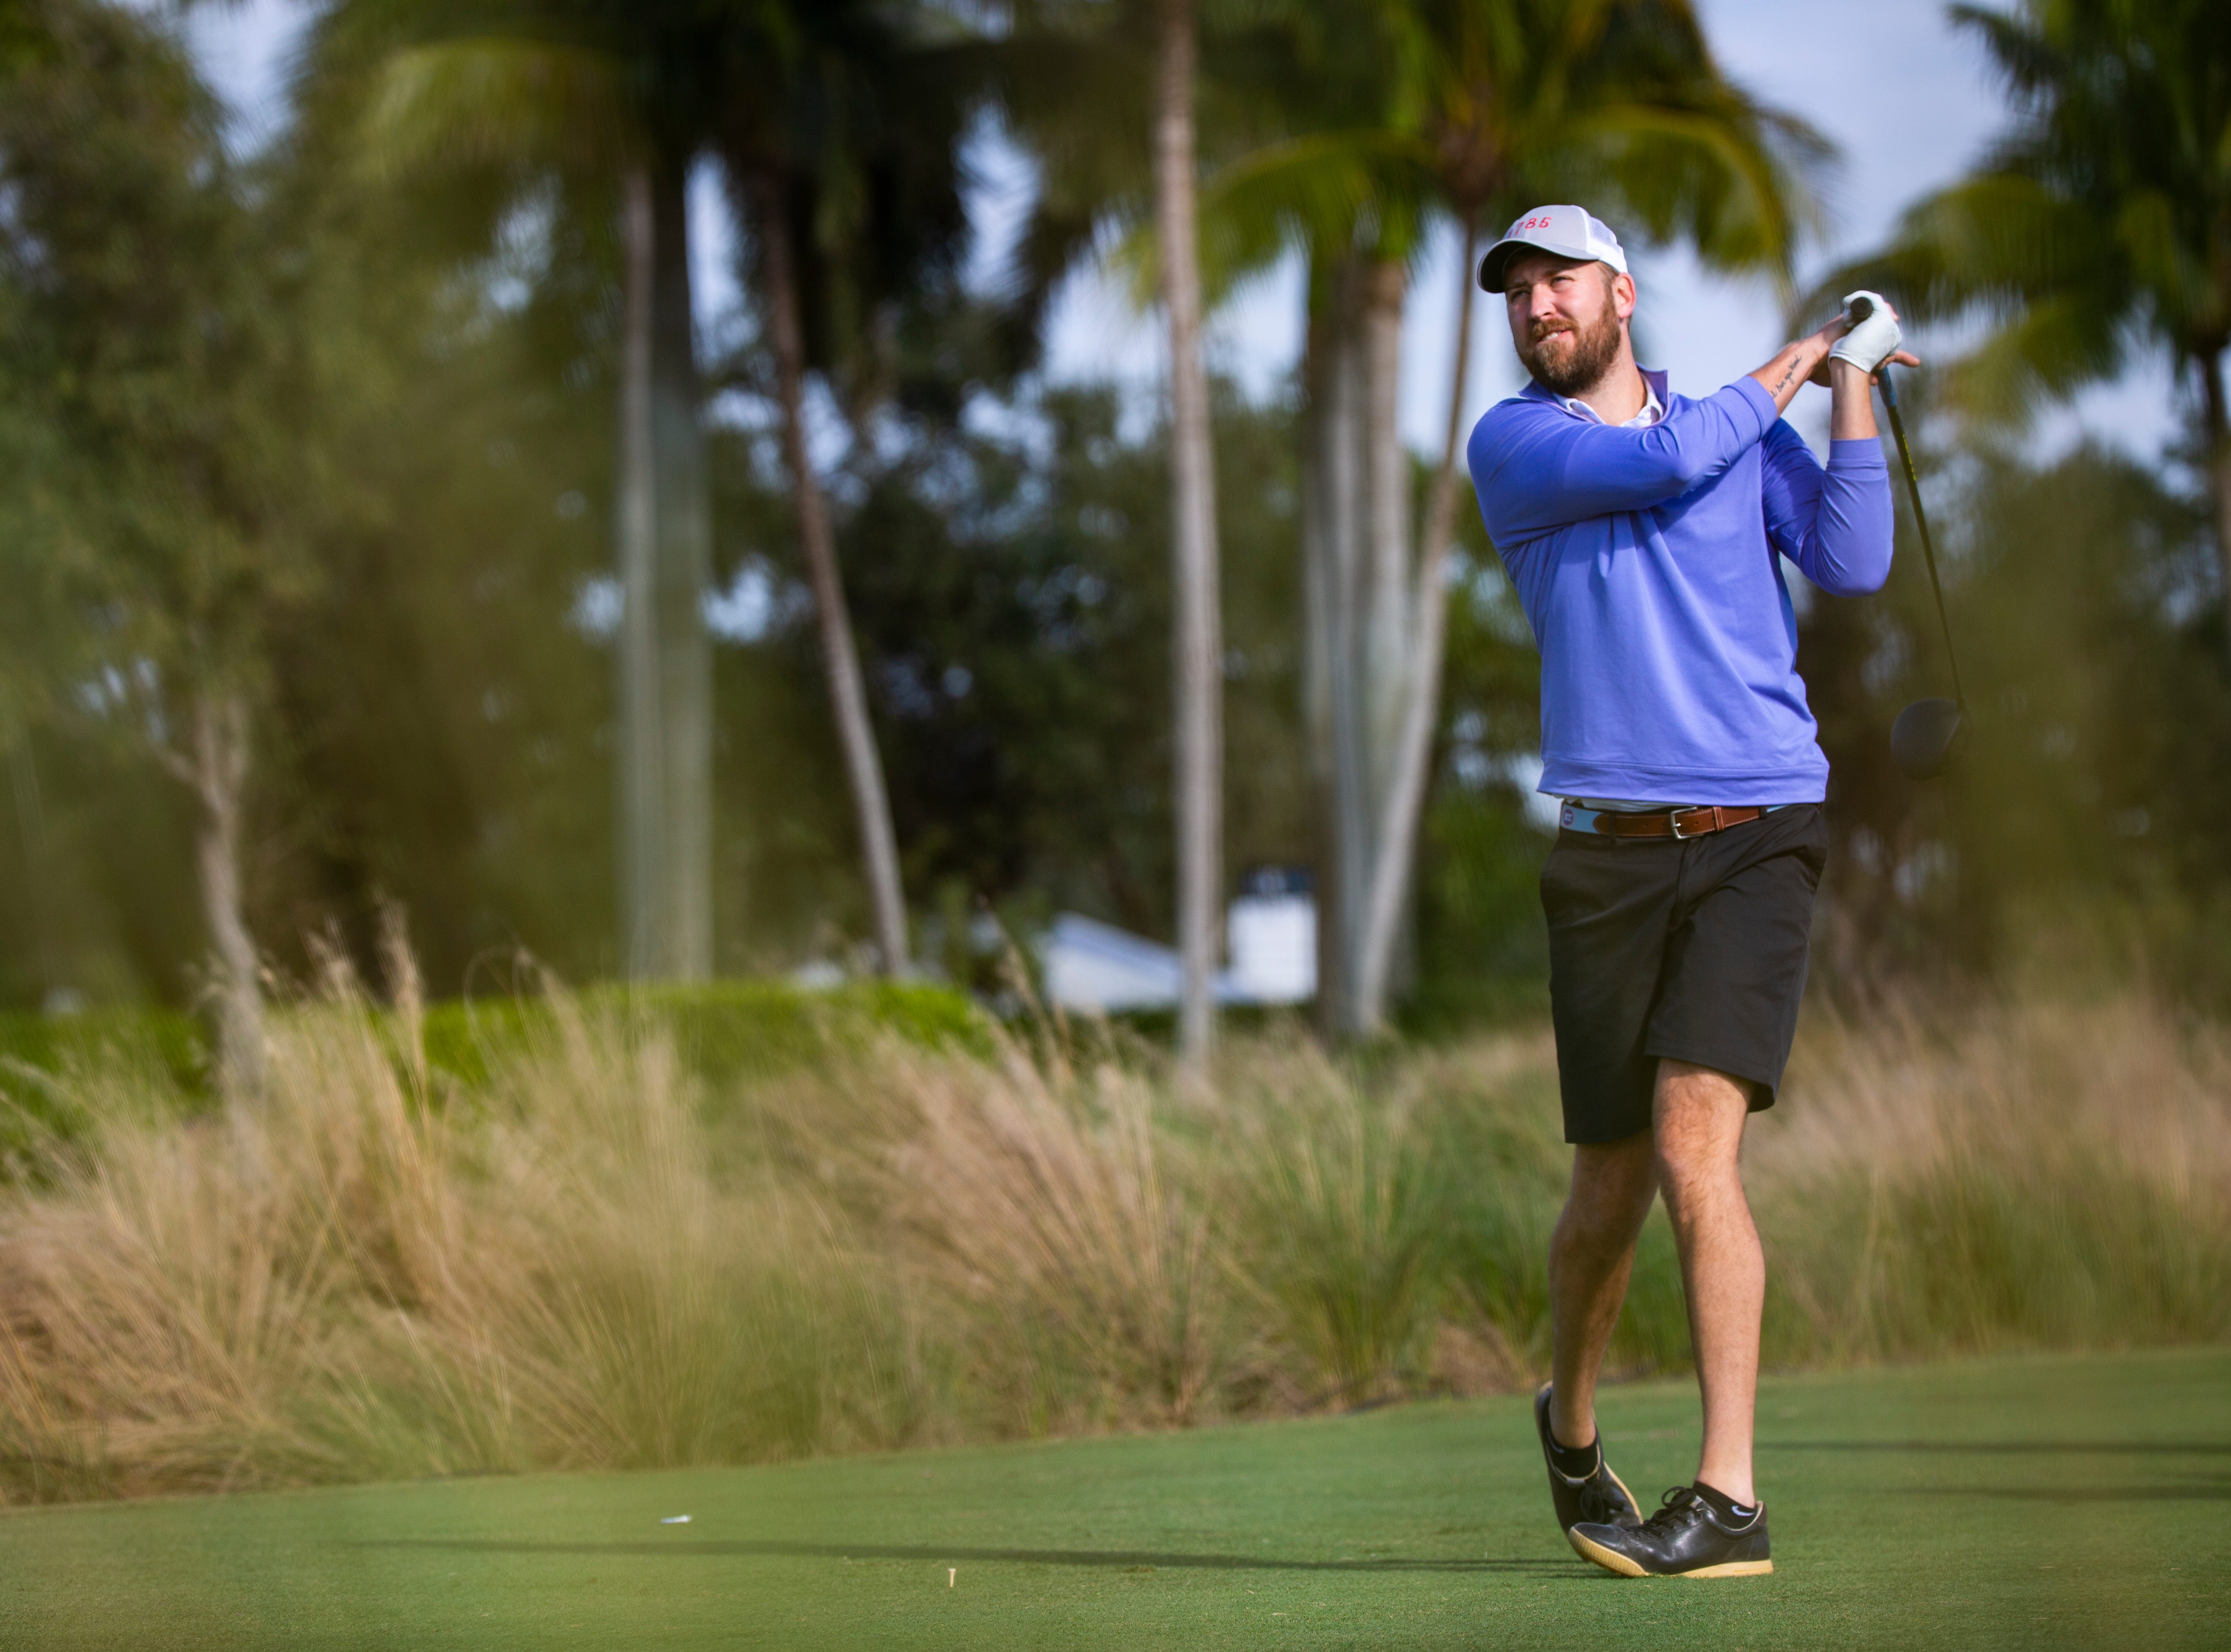 American singer-songwriter, Charles Kelley of country music trio, Lady Antebellum, tees off during the first Pro - Amateur round of the 30th annual QBE Shootout at Tiburón Golf Club on Wednesday, Dec. 5, 2018.